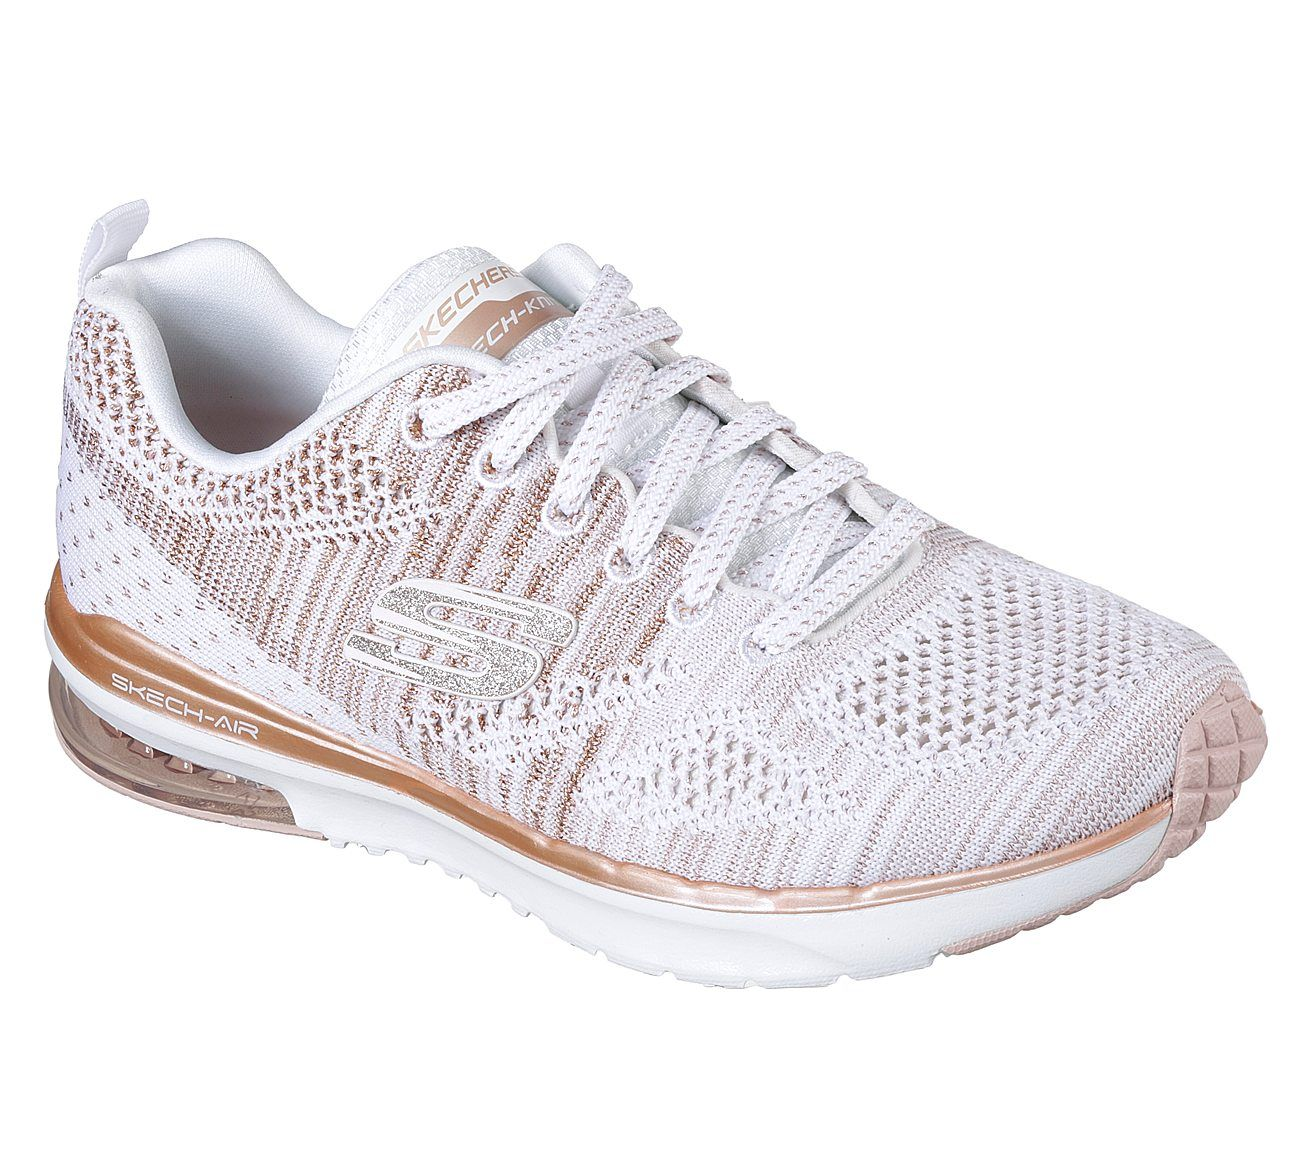 skechers white and rose gold